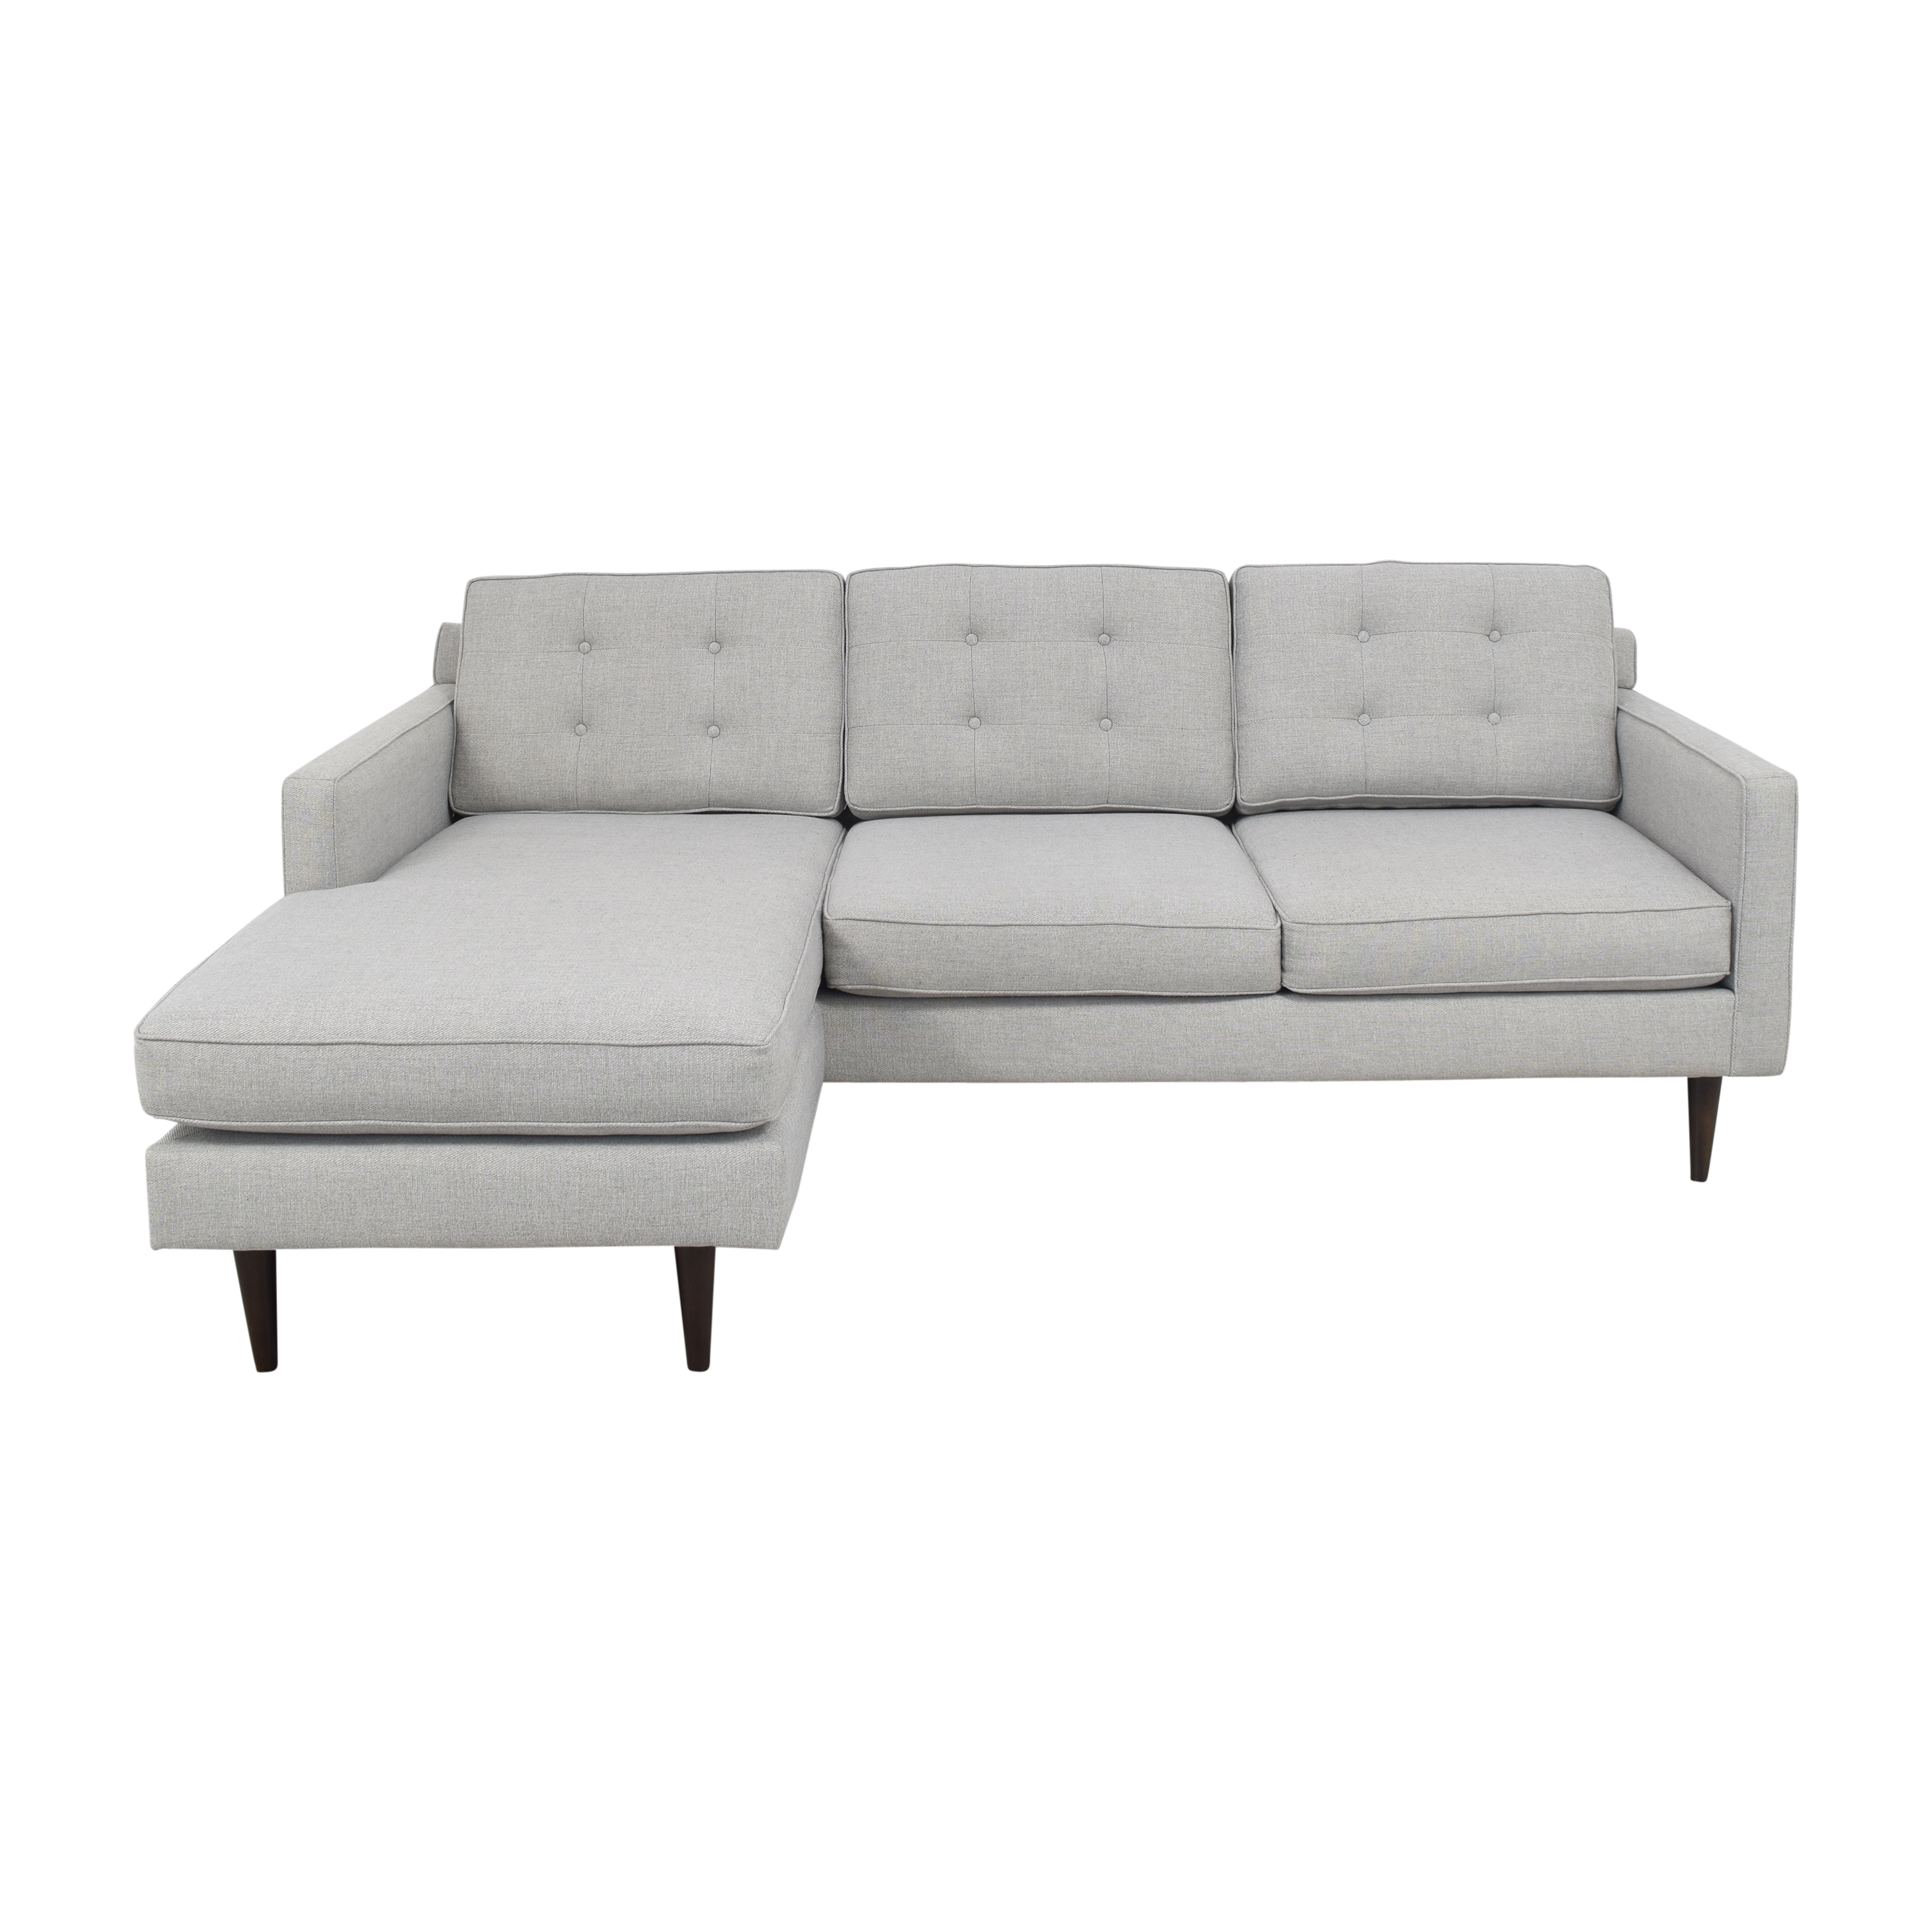 West Elm West Elm Drake Reversible Chaise Sectional Sofa Sofas